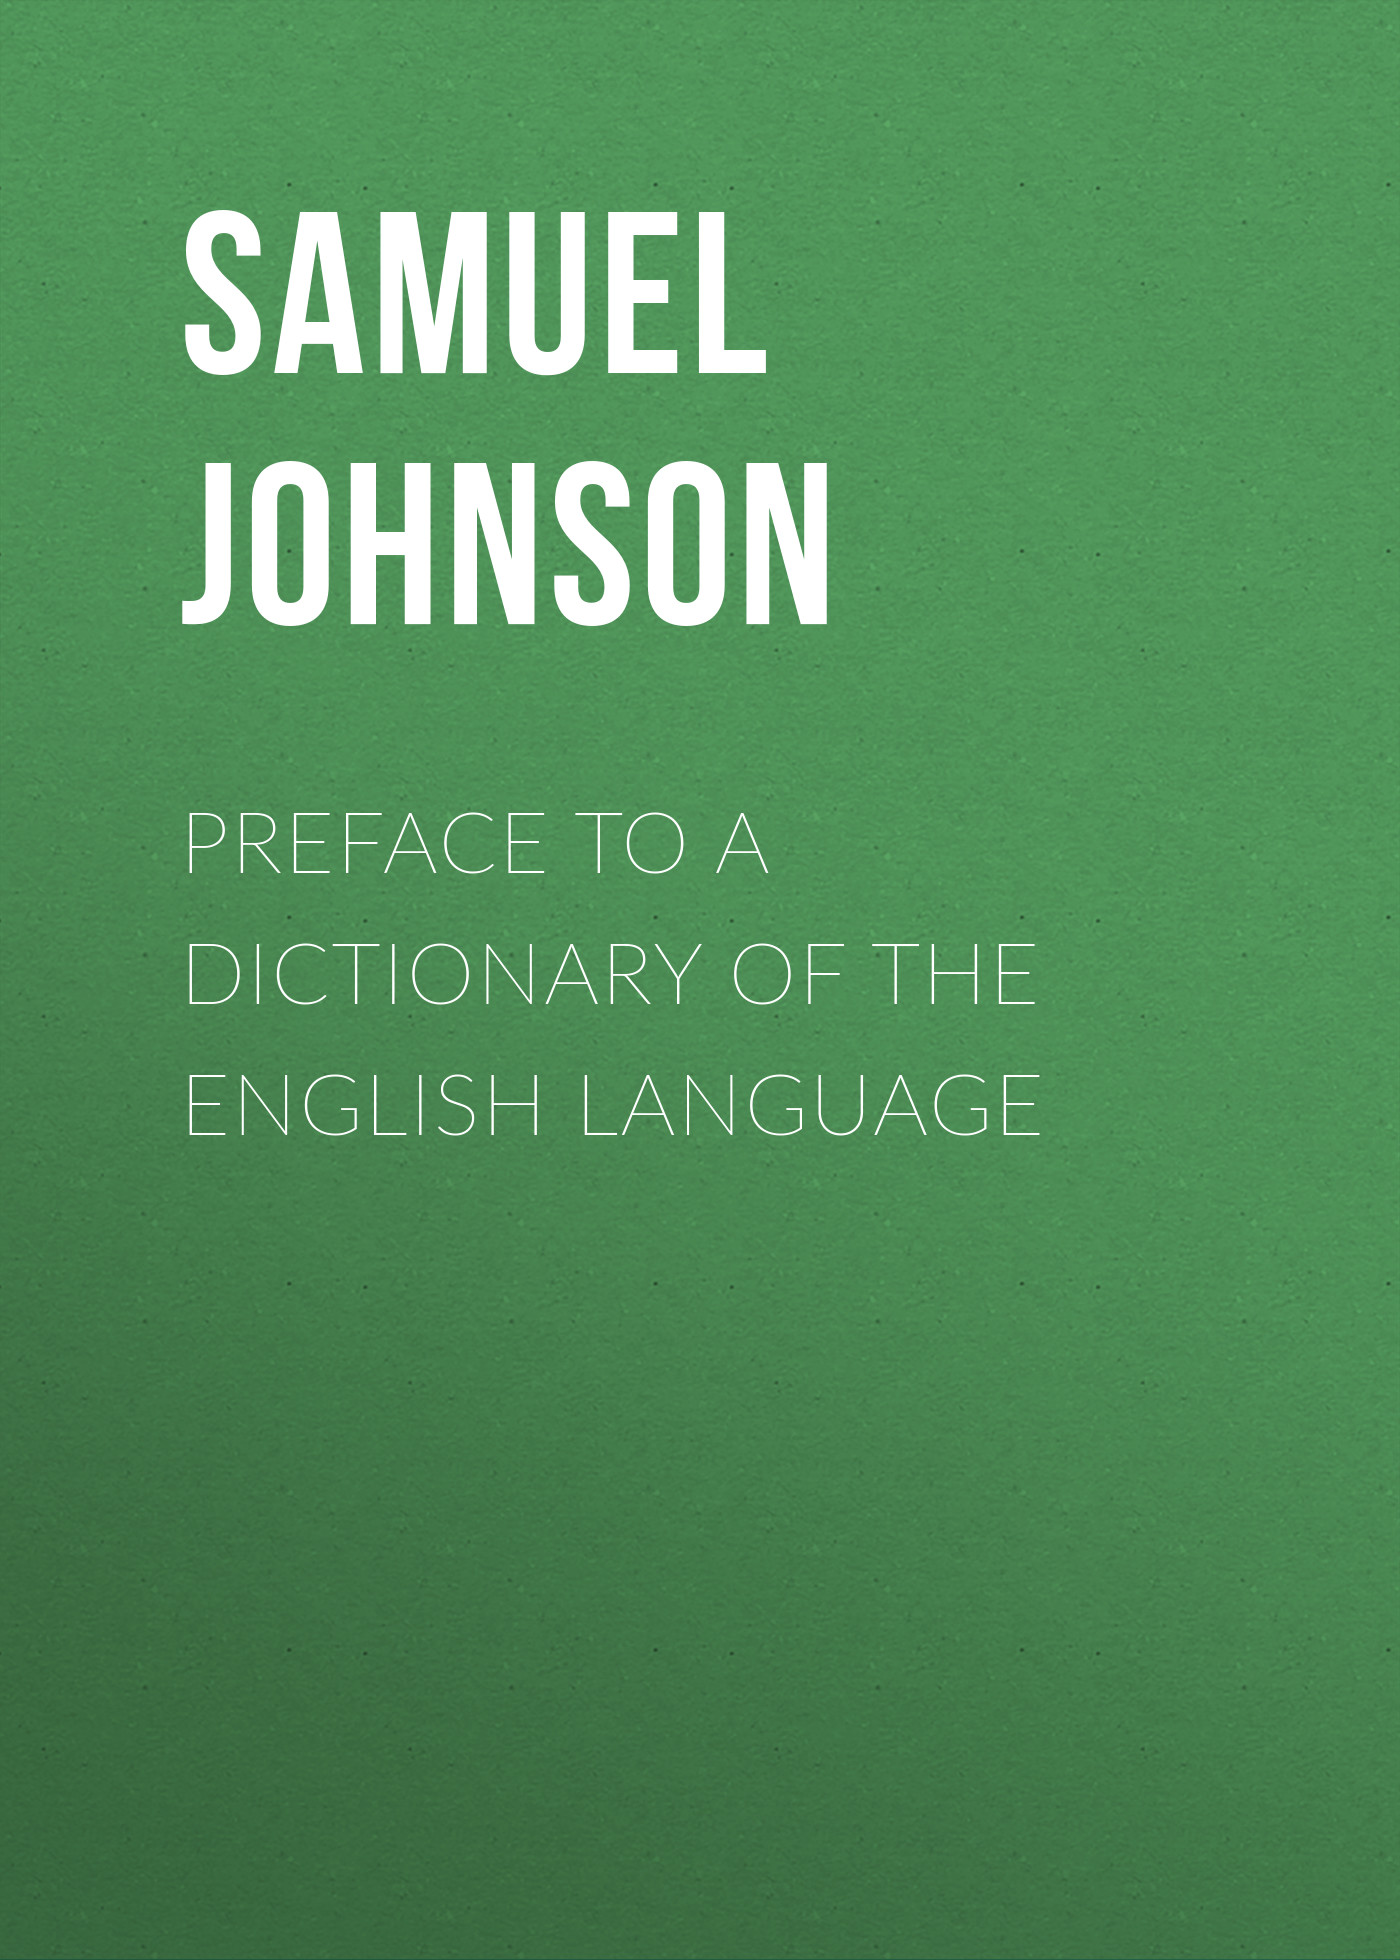 Фото - Samuel Johnson Preface to a Dictionary of the English Language ernst artschwager dictionary of biological equivalents german english